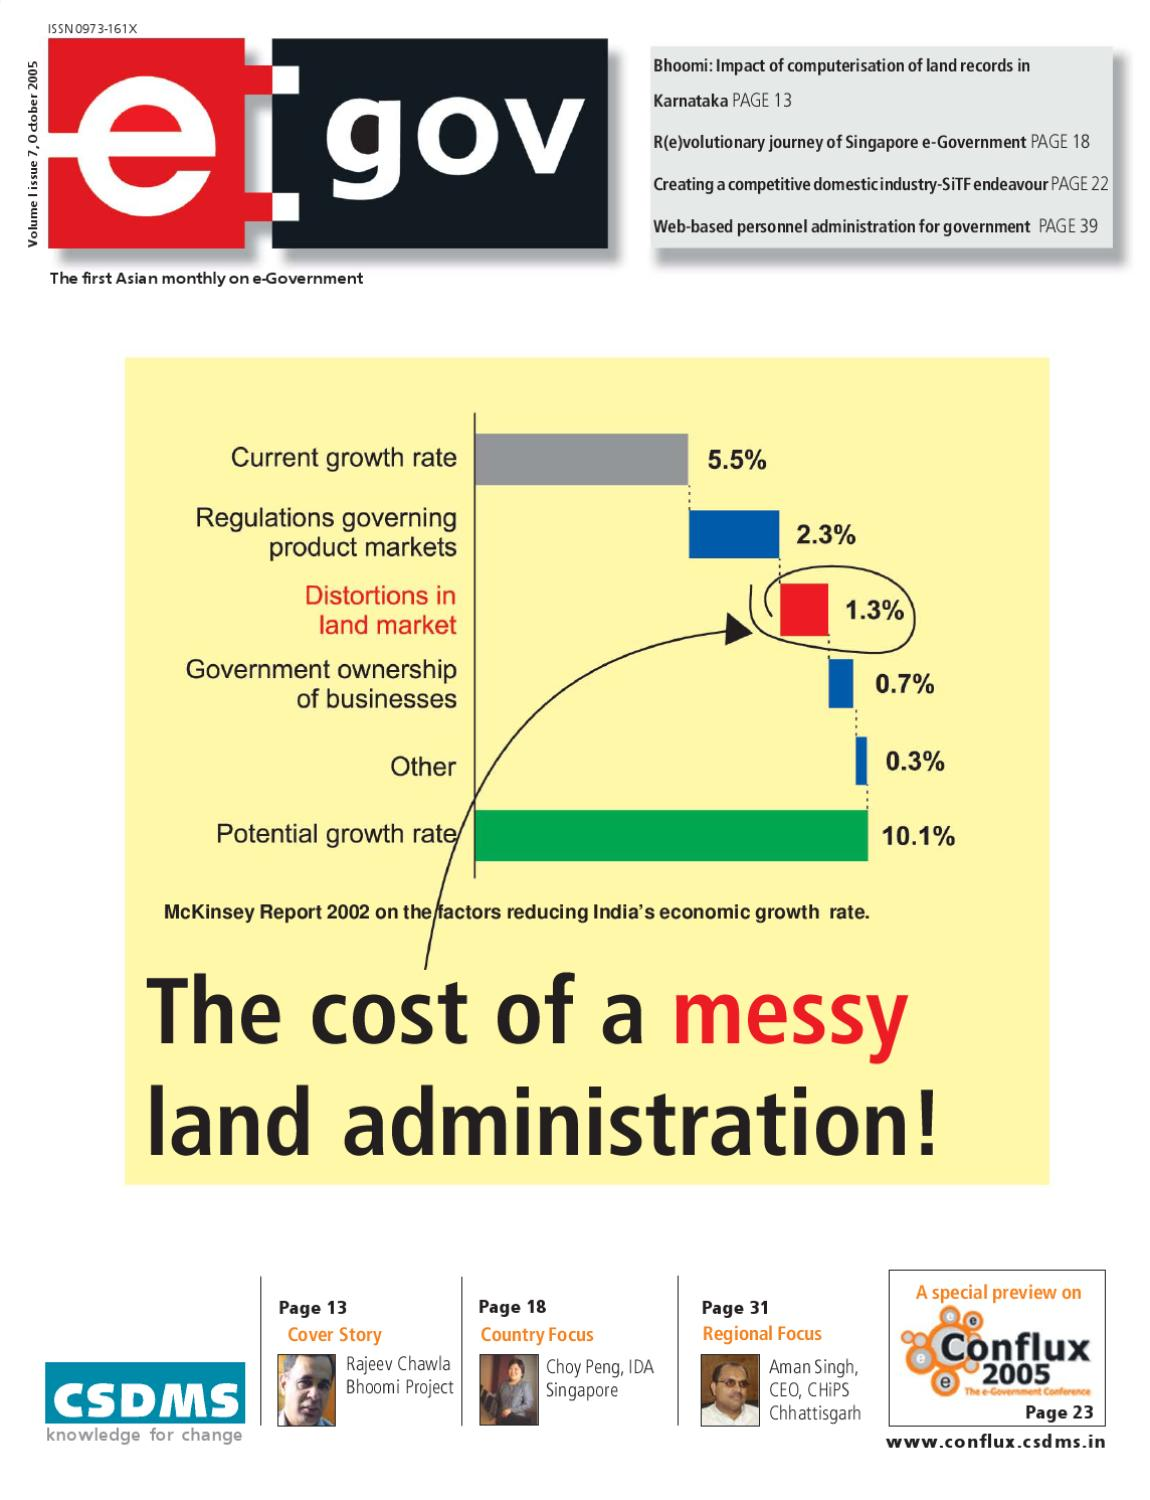 The cost of a messyland administration: October 2005 Issue